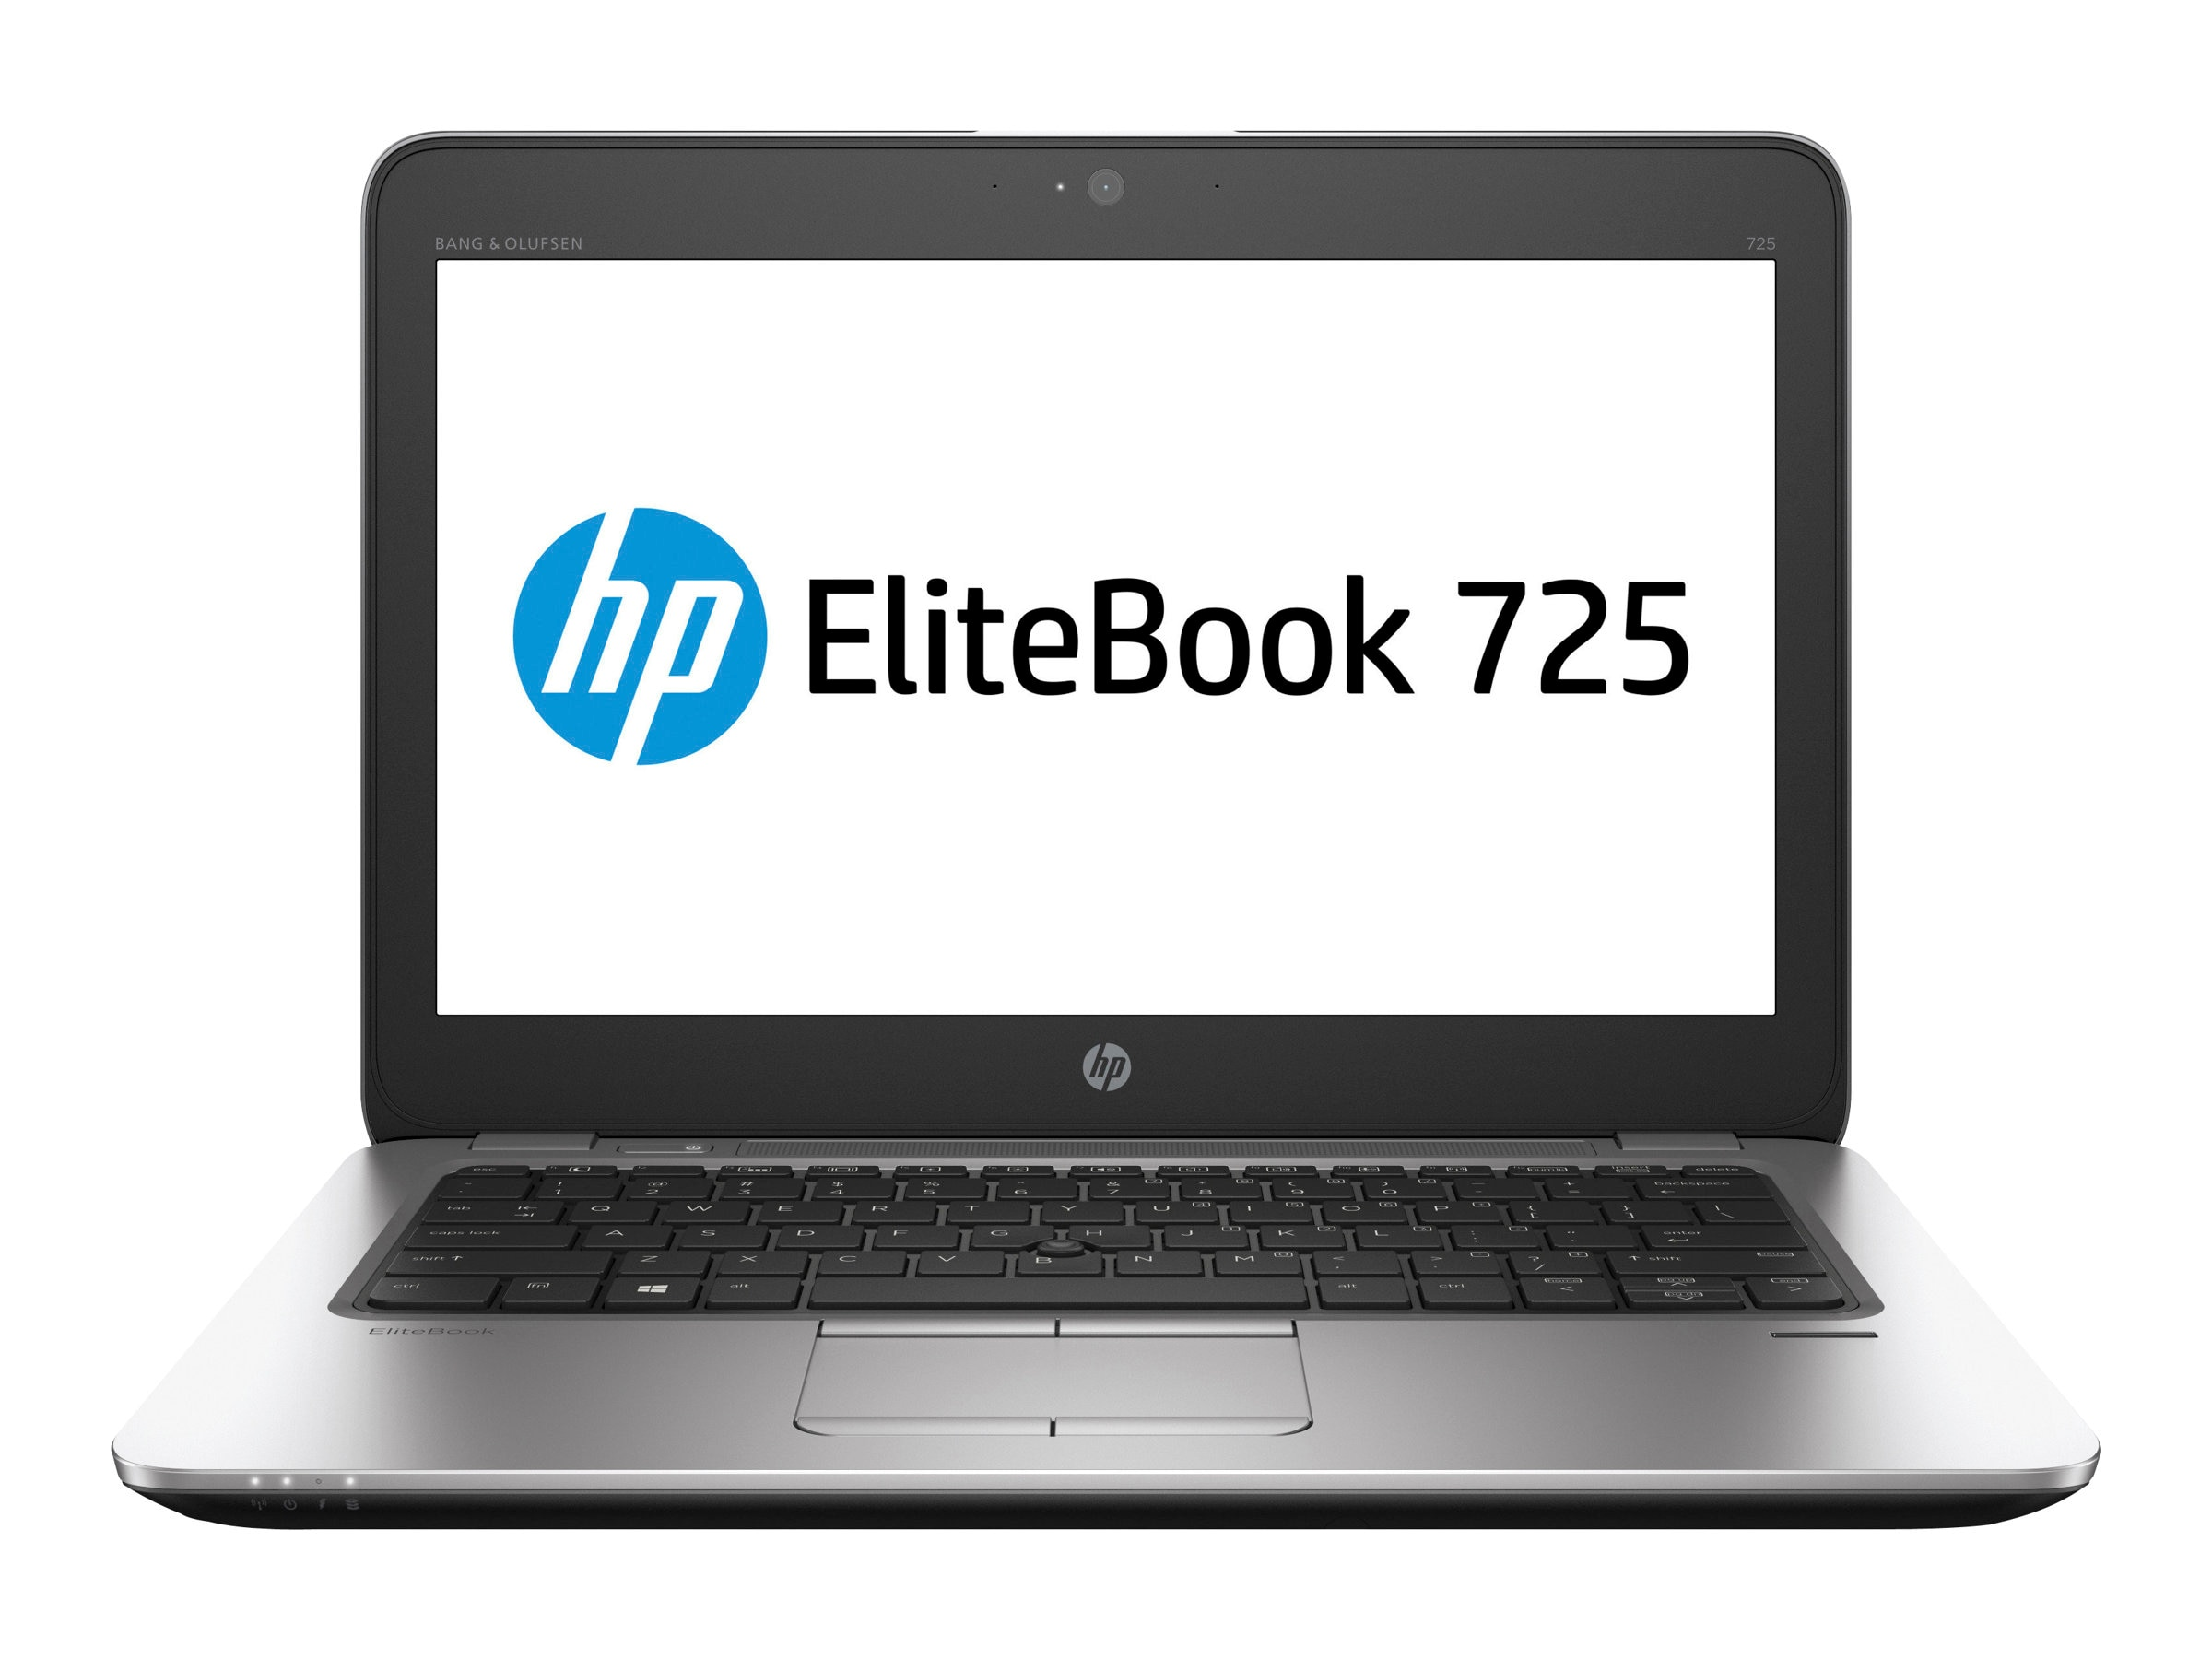 HP EliteBook 725 G3 1.8GHz A10 Pro 12.5in display